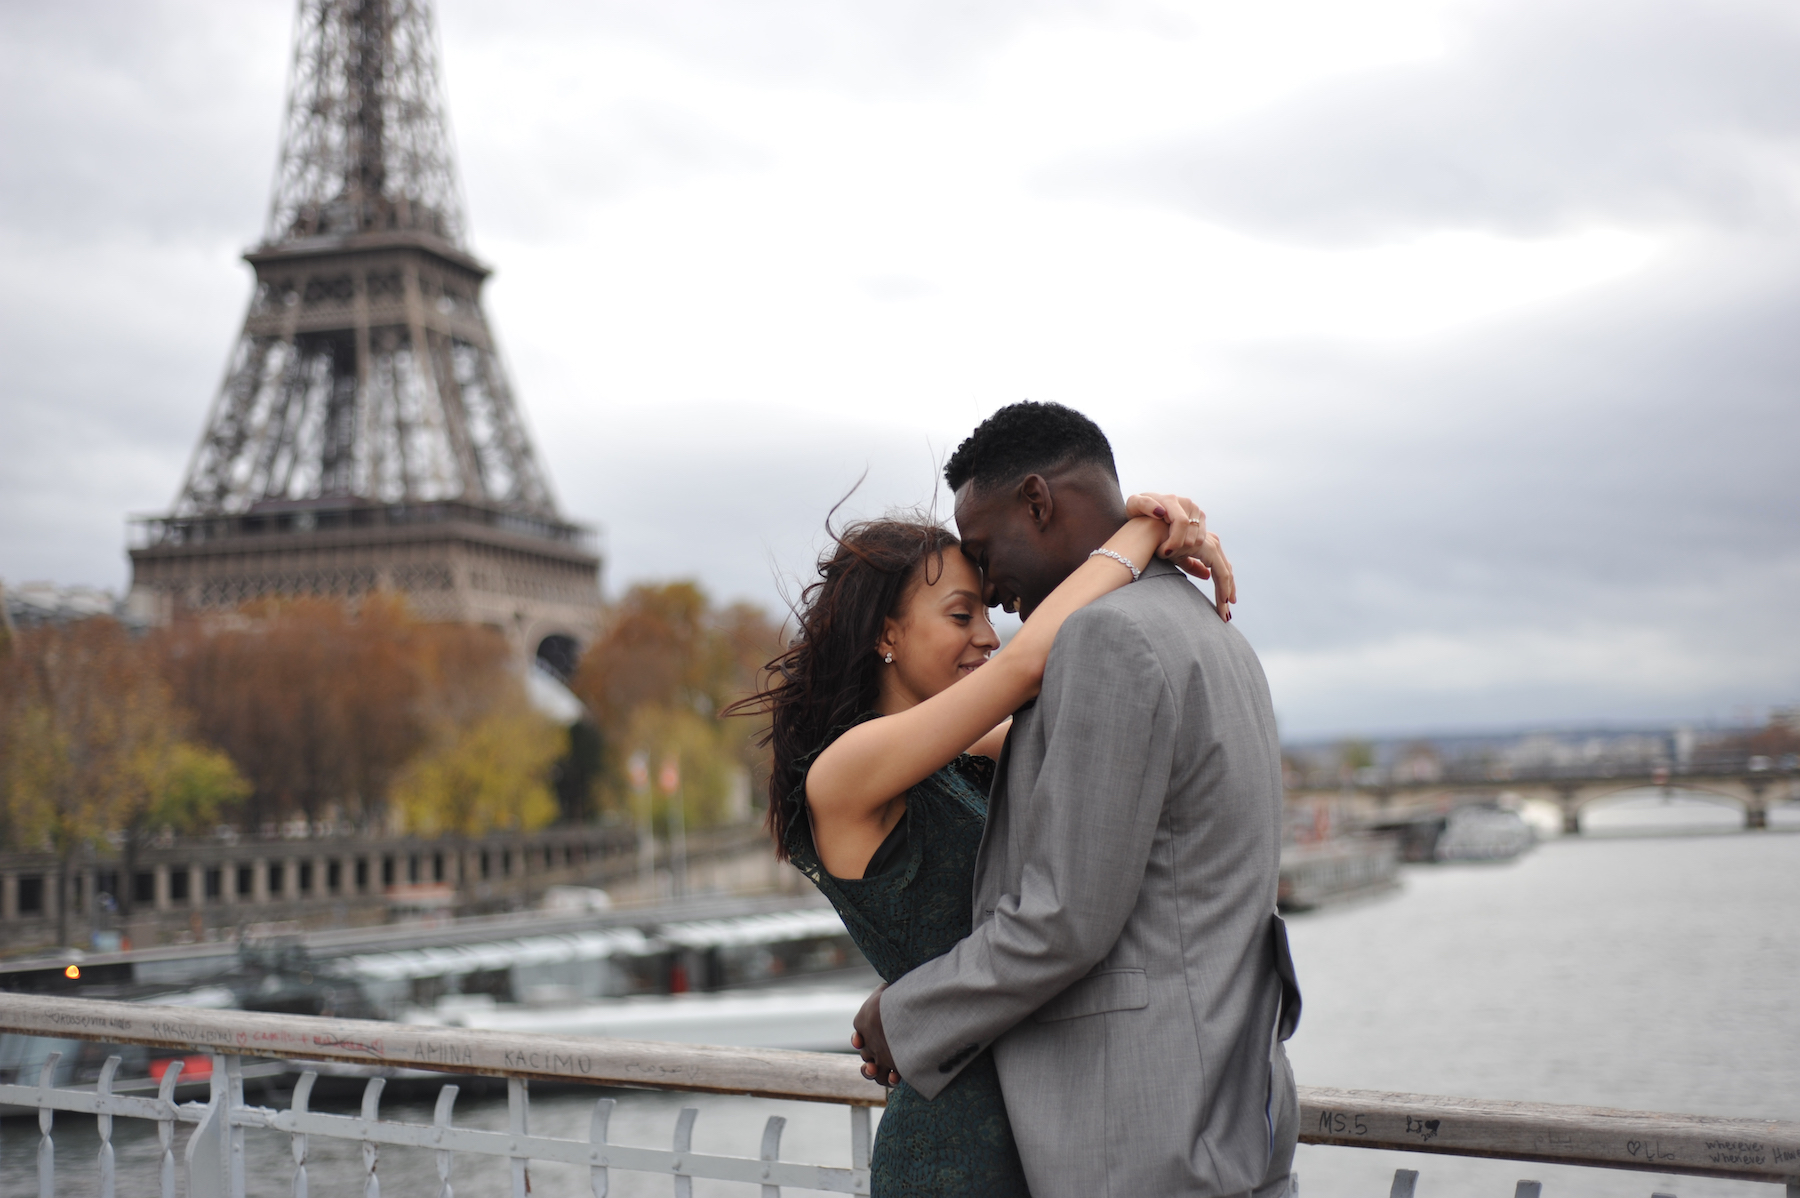 Couple hugging each other with the Eiffel Tower in the background in Paris, France